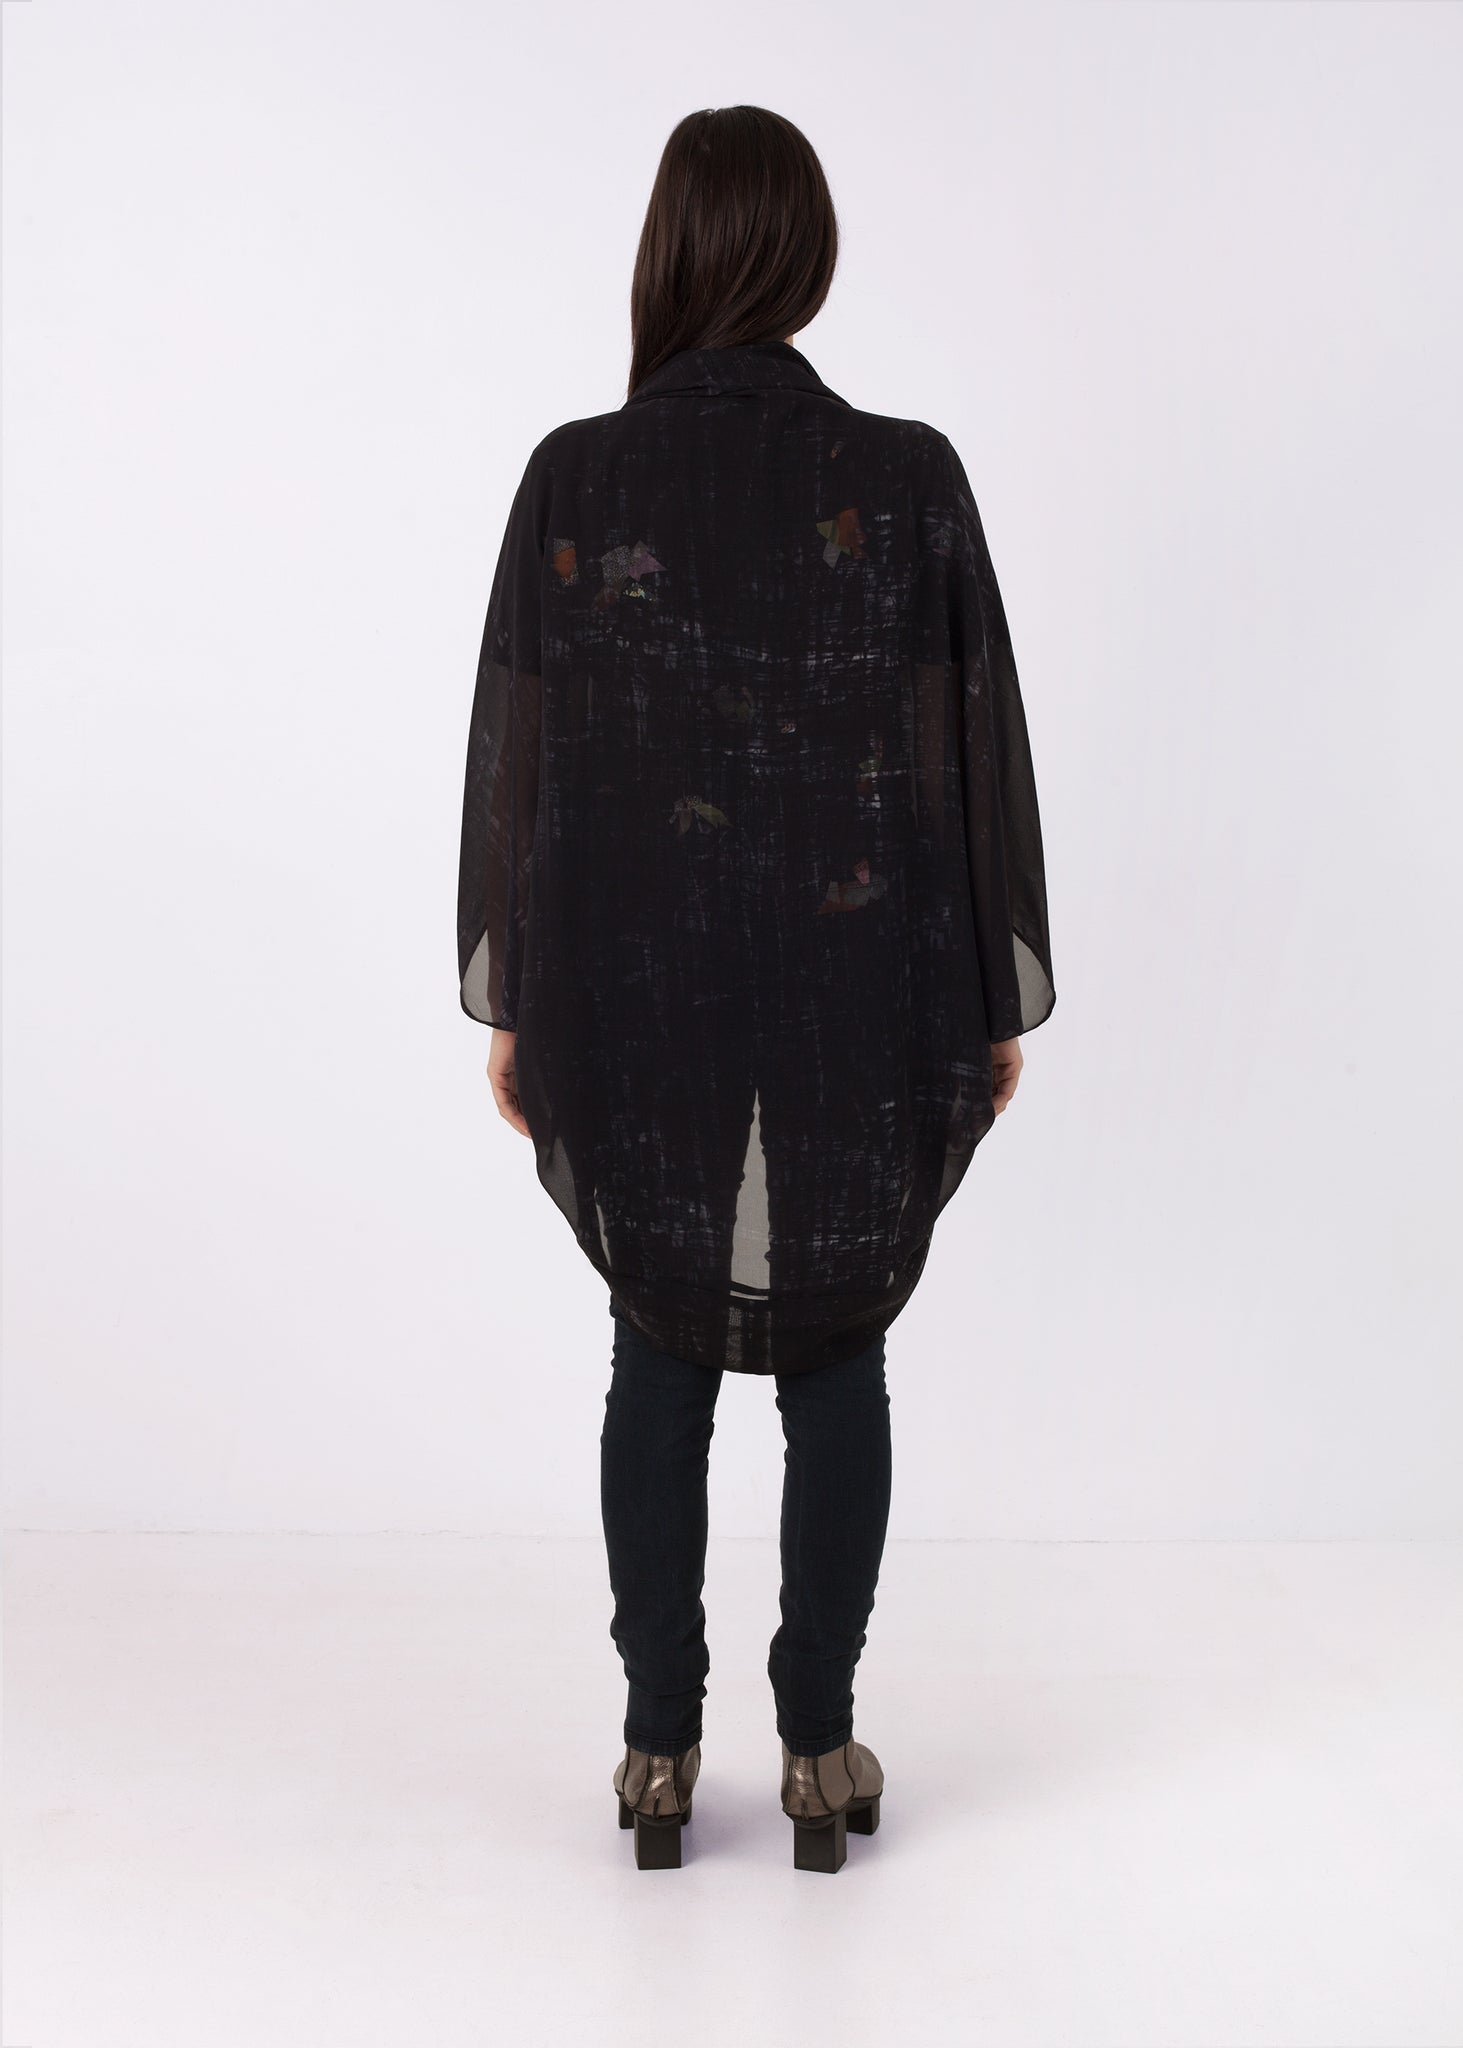 Fraser Crowe Featherweight Kimono Black Square Scribble, ethical fashion, sustainable fashion, designer clothes, plus size clothing, textile print clothing, luxury online fashion